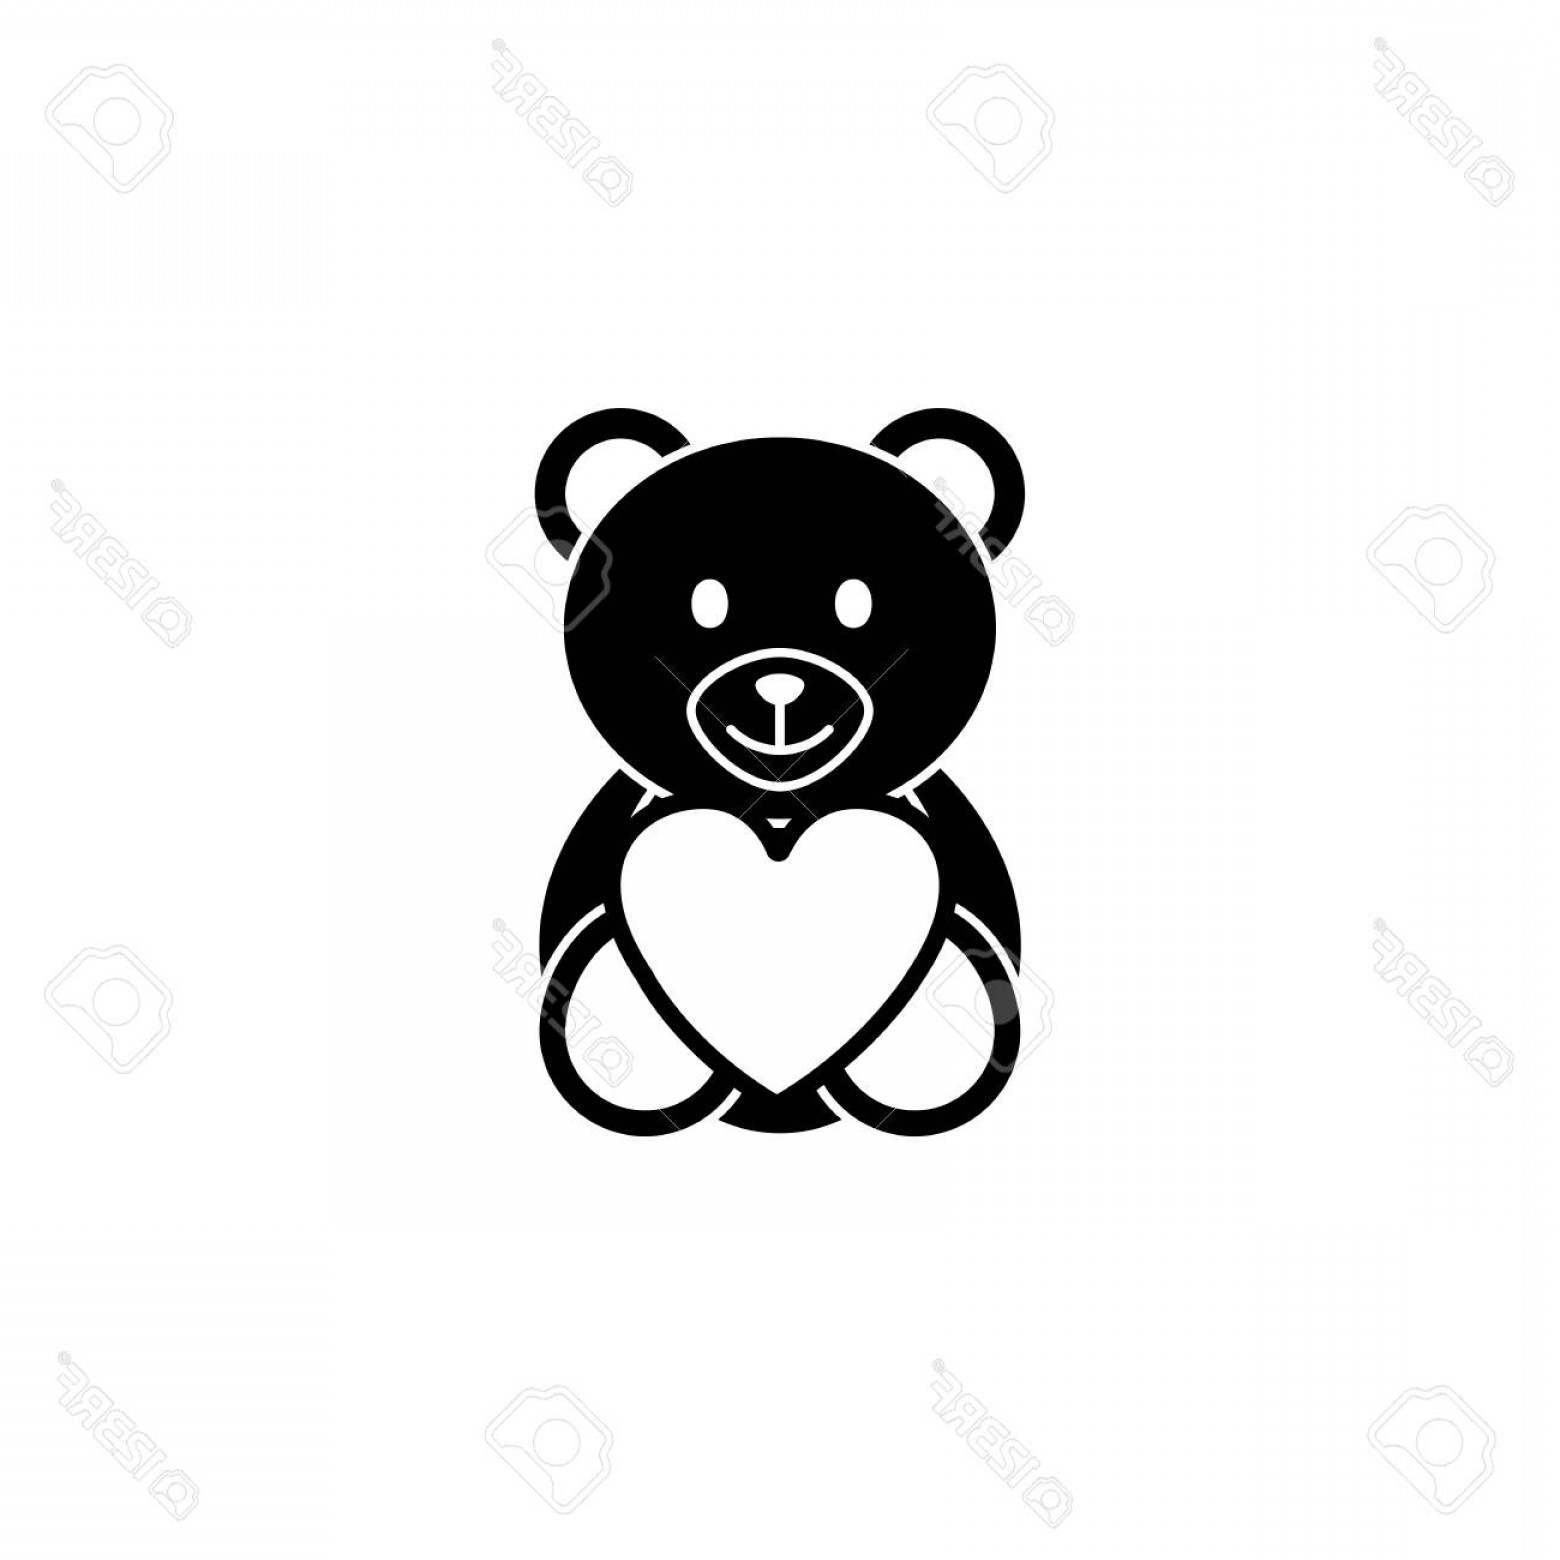 Solid Heart Vector Drawing: Photostock Vector Teddy Bear Wtih Heart Solid Icon Soft Toy For Valentine S Day Vector Graphics A Filled Pattern On A